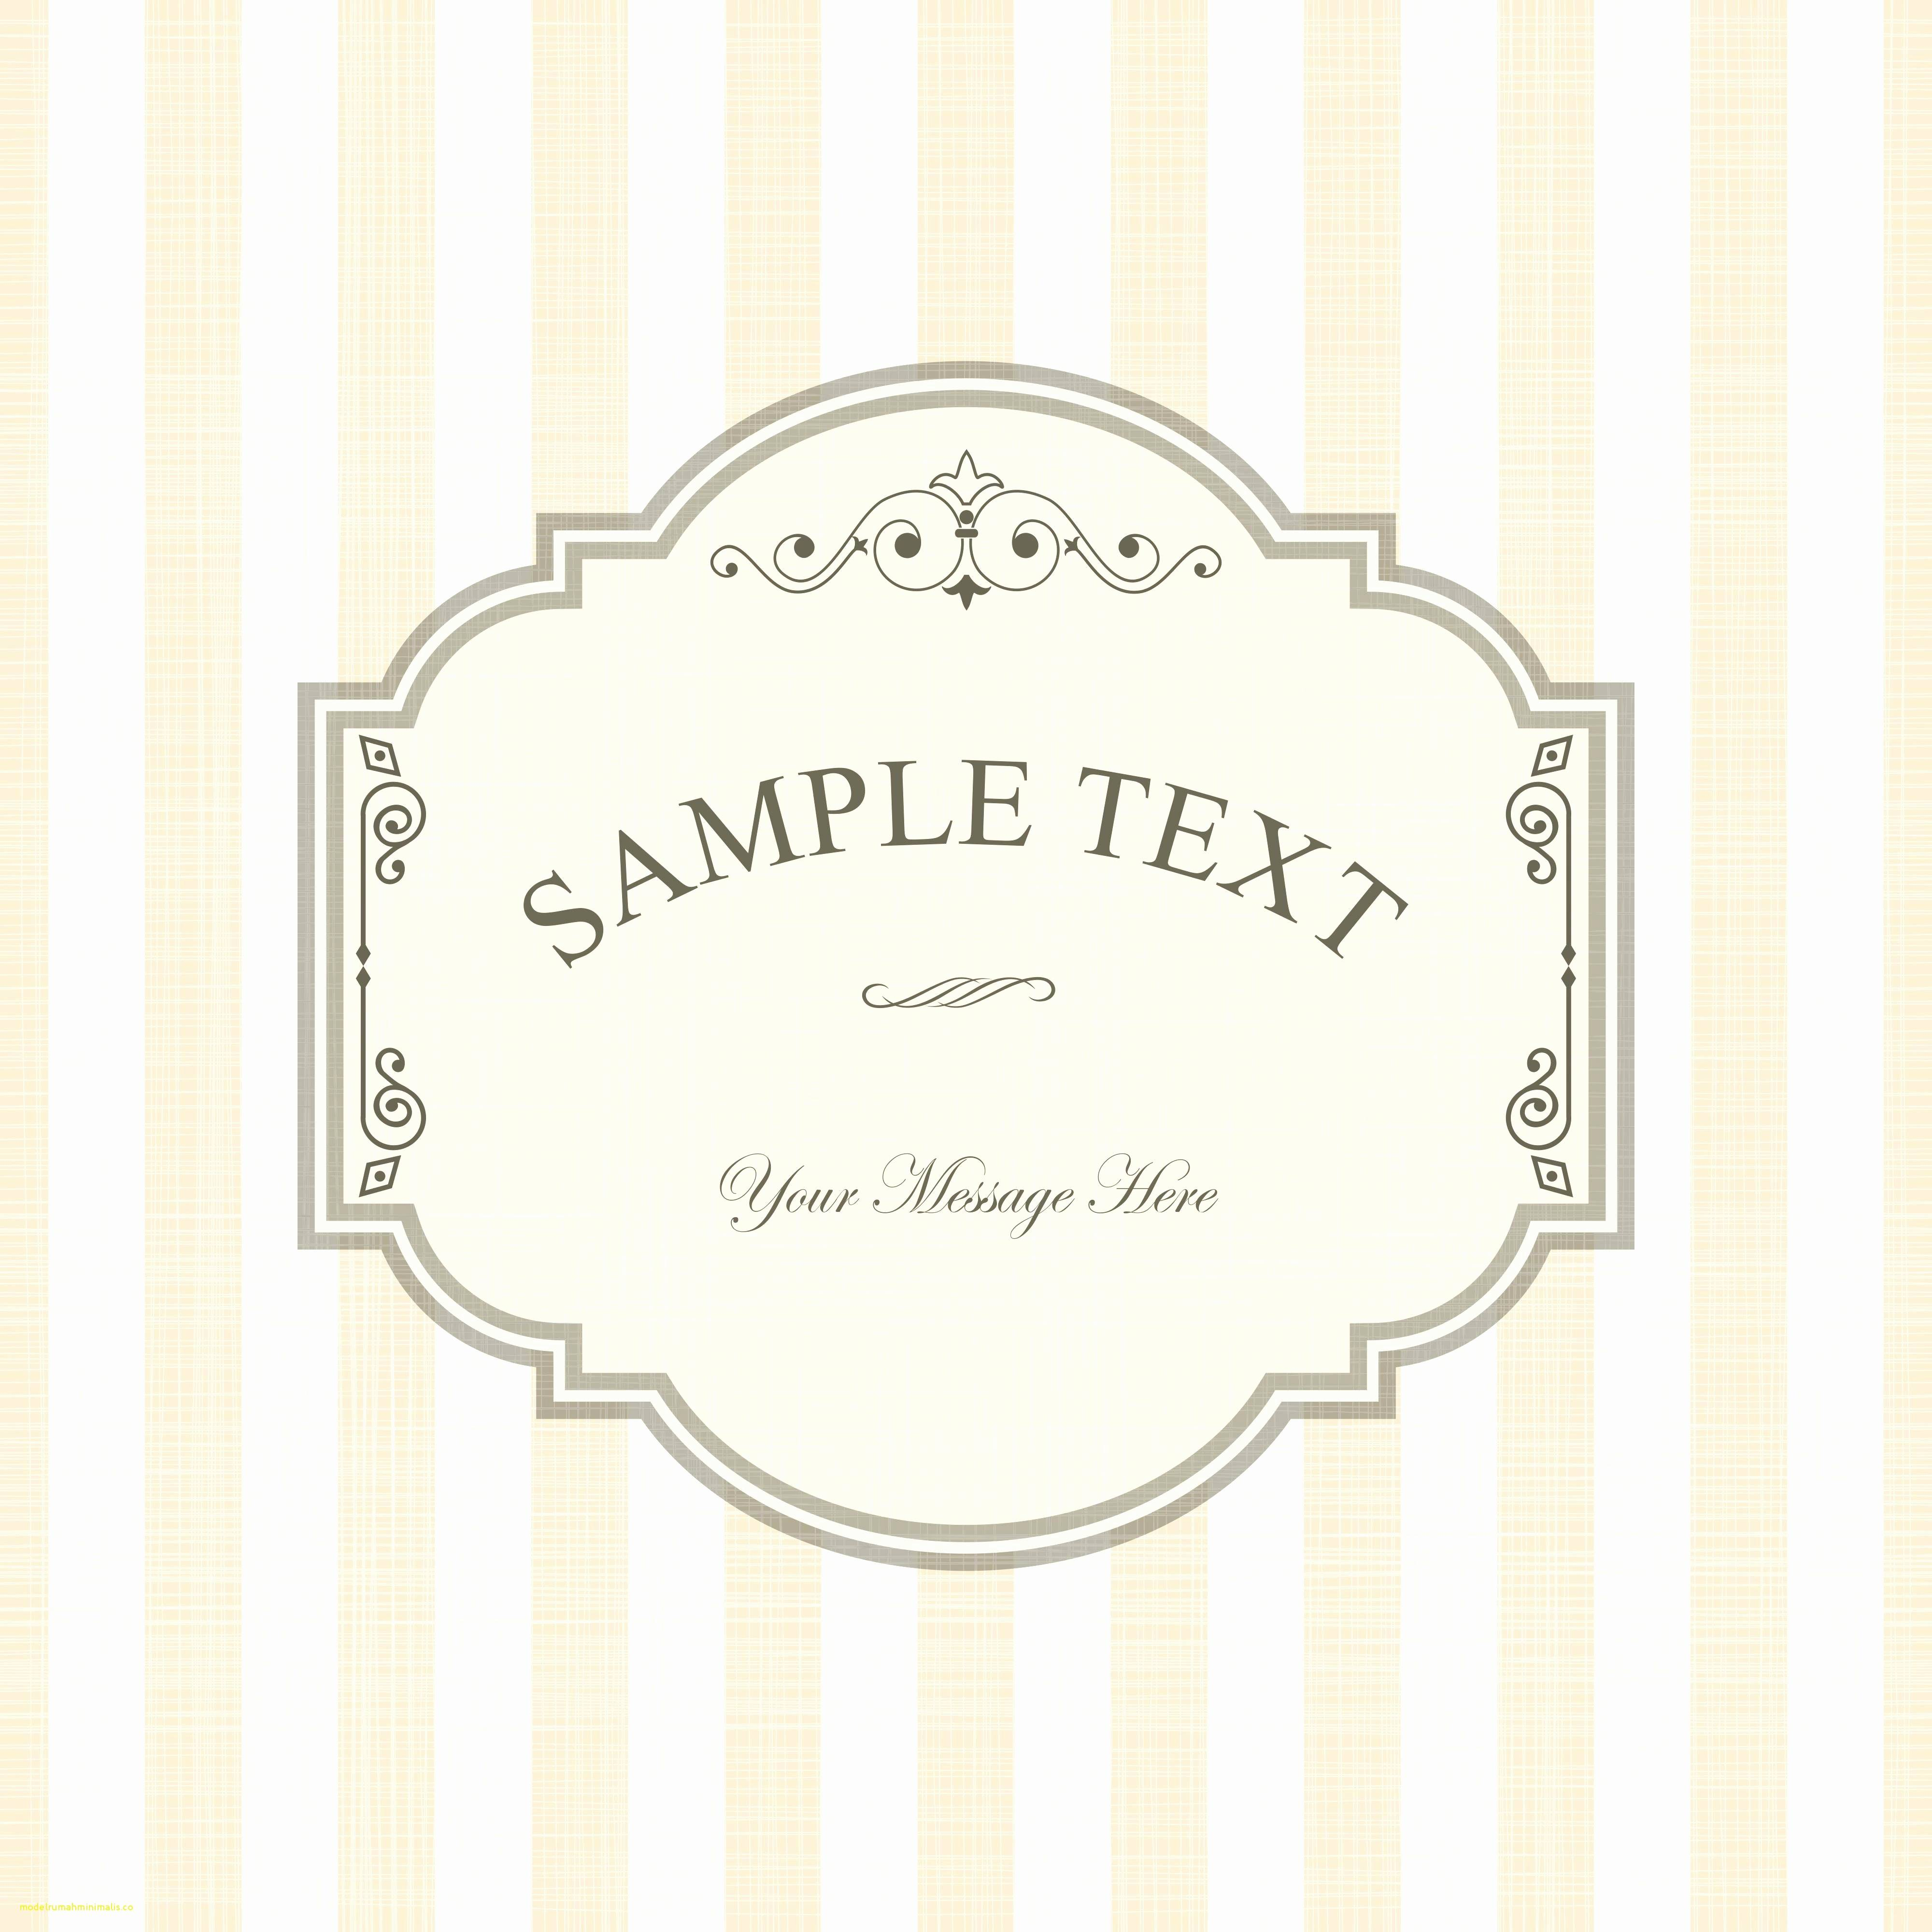 5260 label template avery template 5260 blank beautiful for Avery template 5260 blank